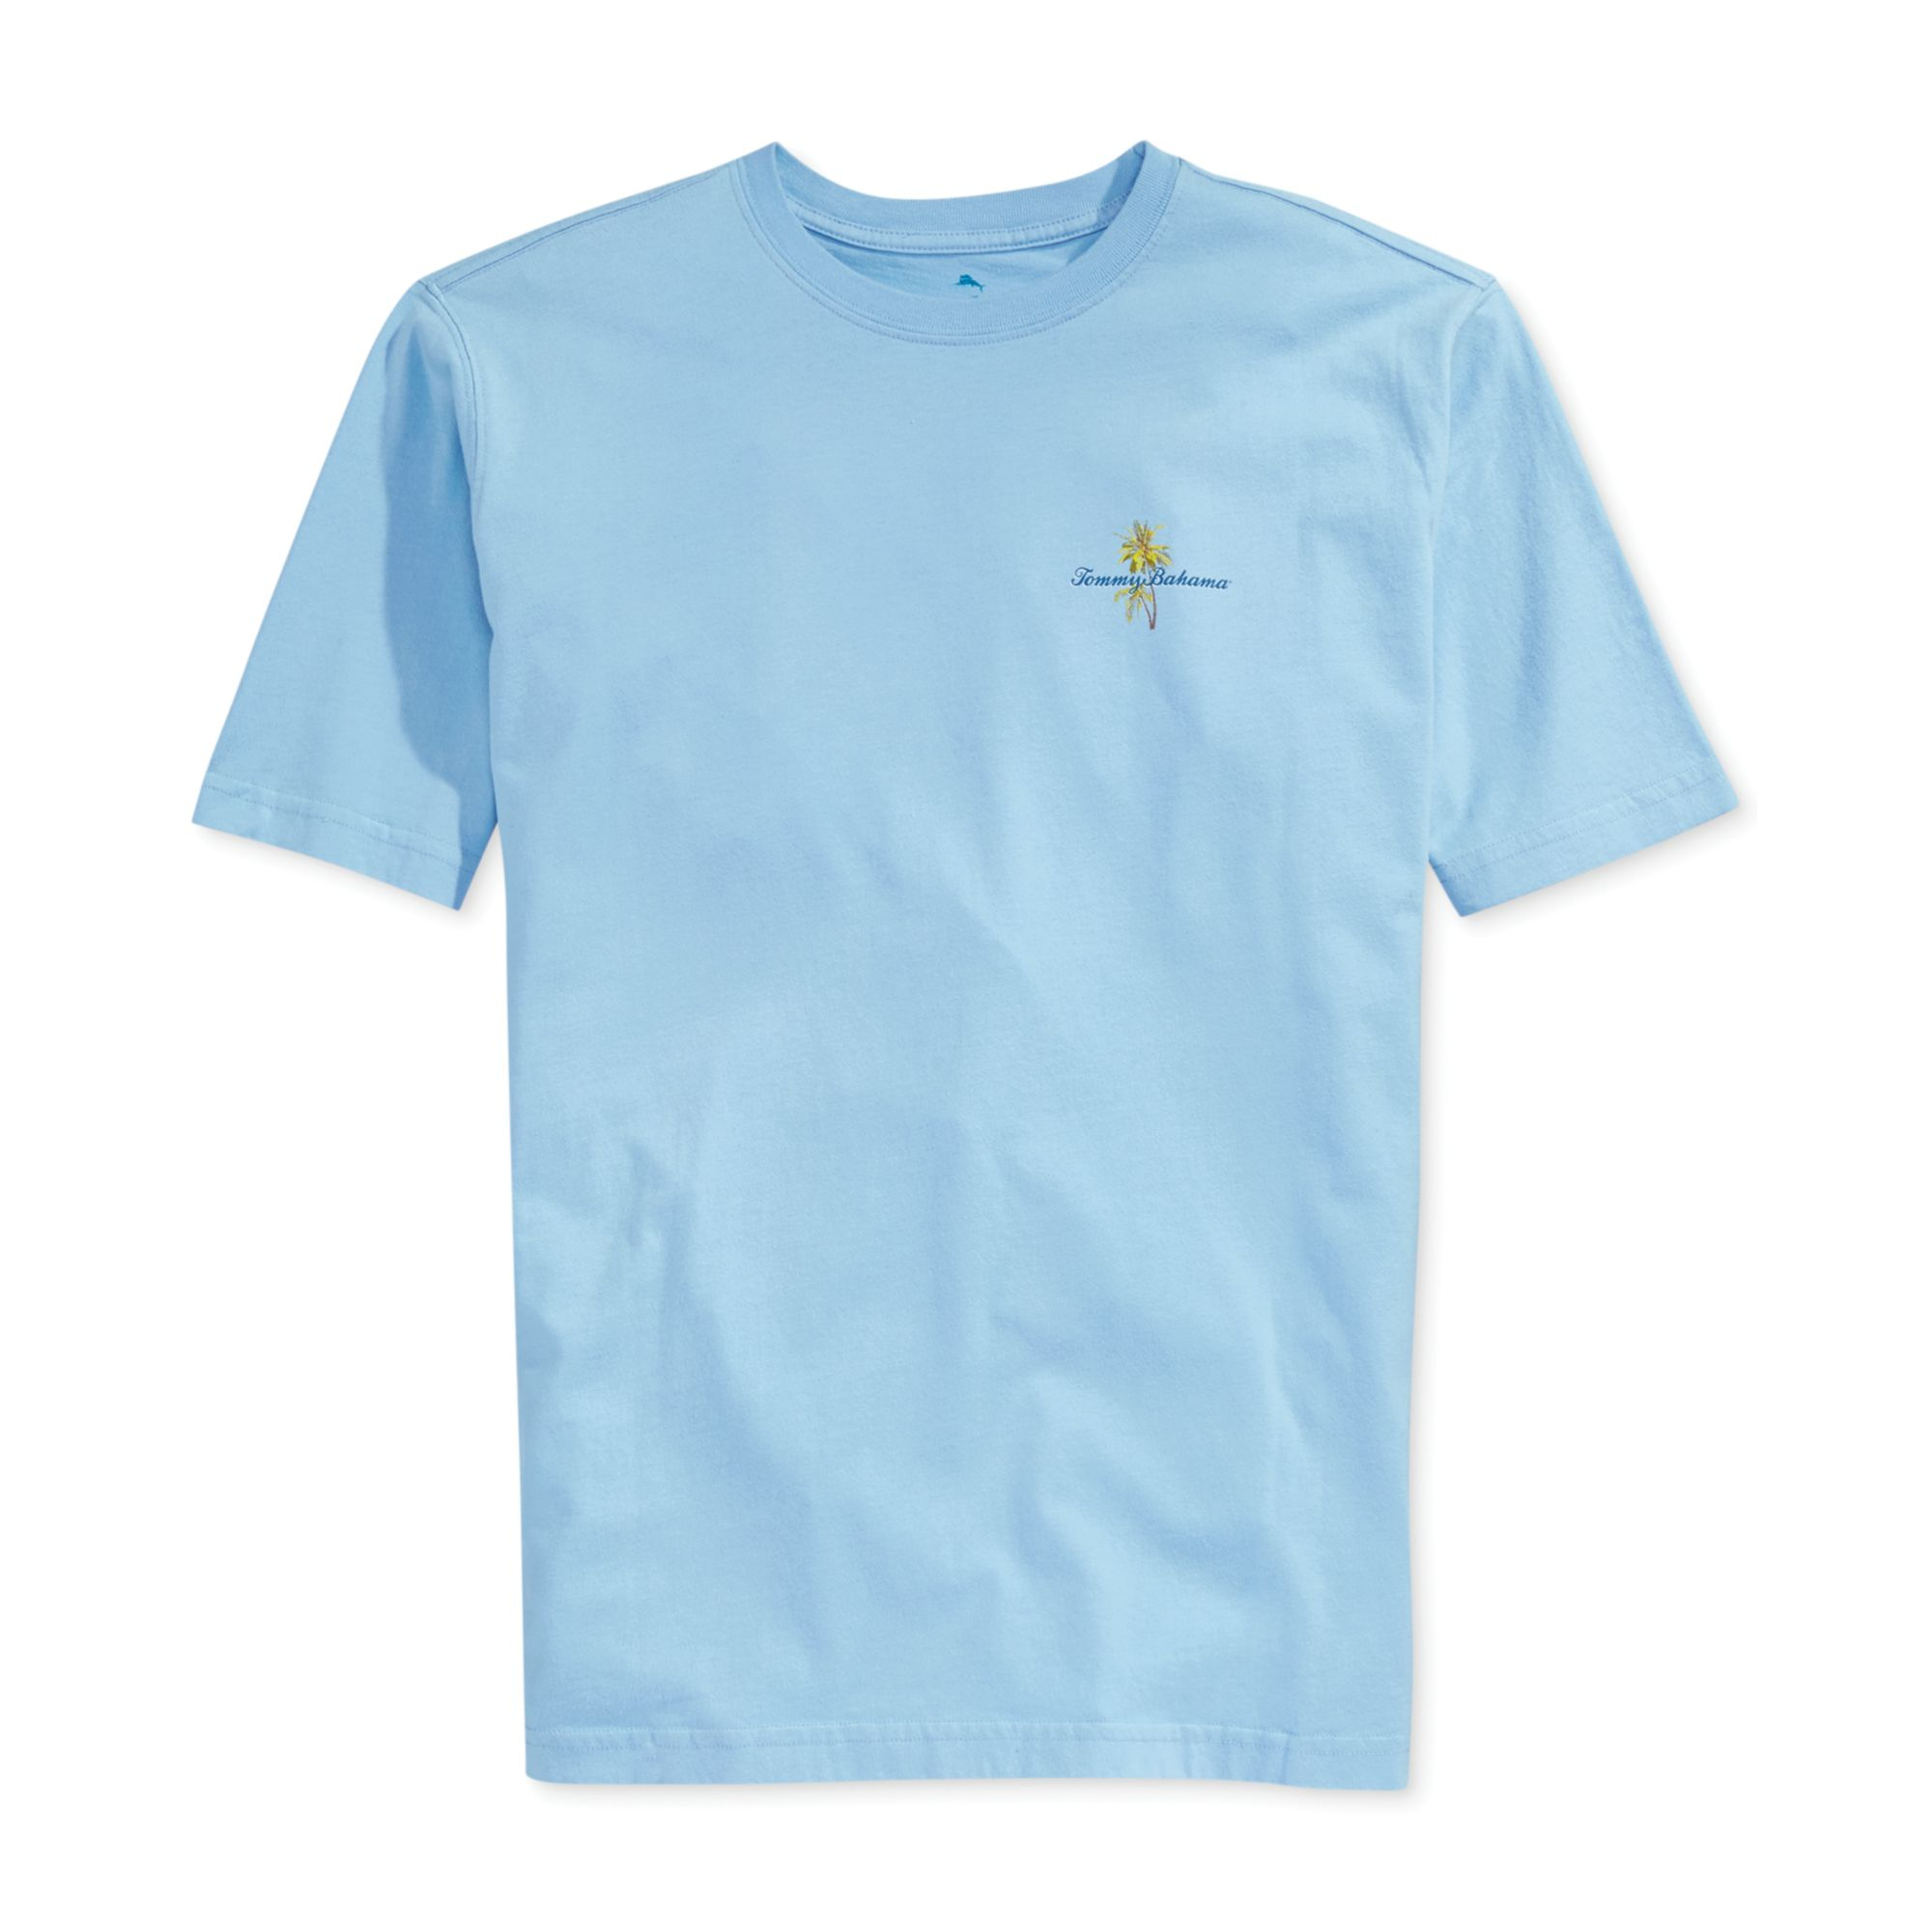 Tommy bahama floating holiday tshirt in blue for men lyst for Tommy bahama christmas shirt 2014